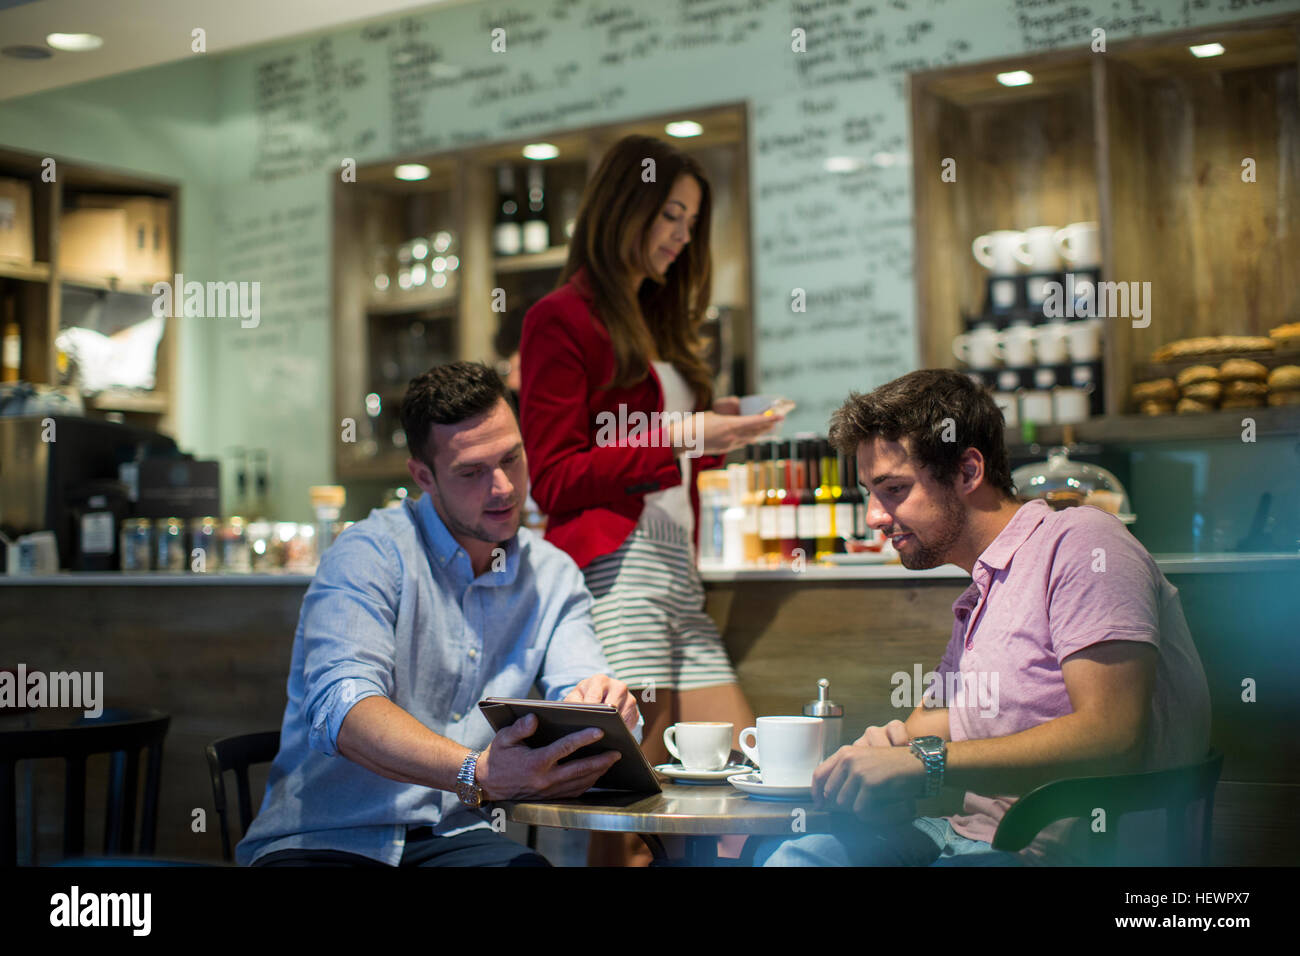 Male friends sitting in cafe looking at digital tablet - Stock Image